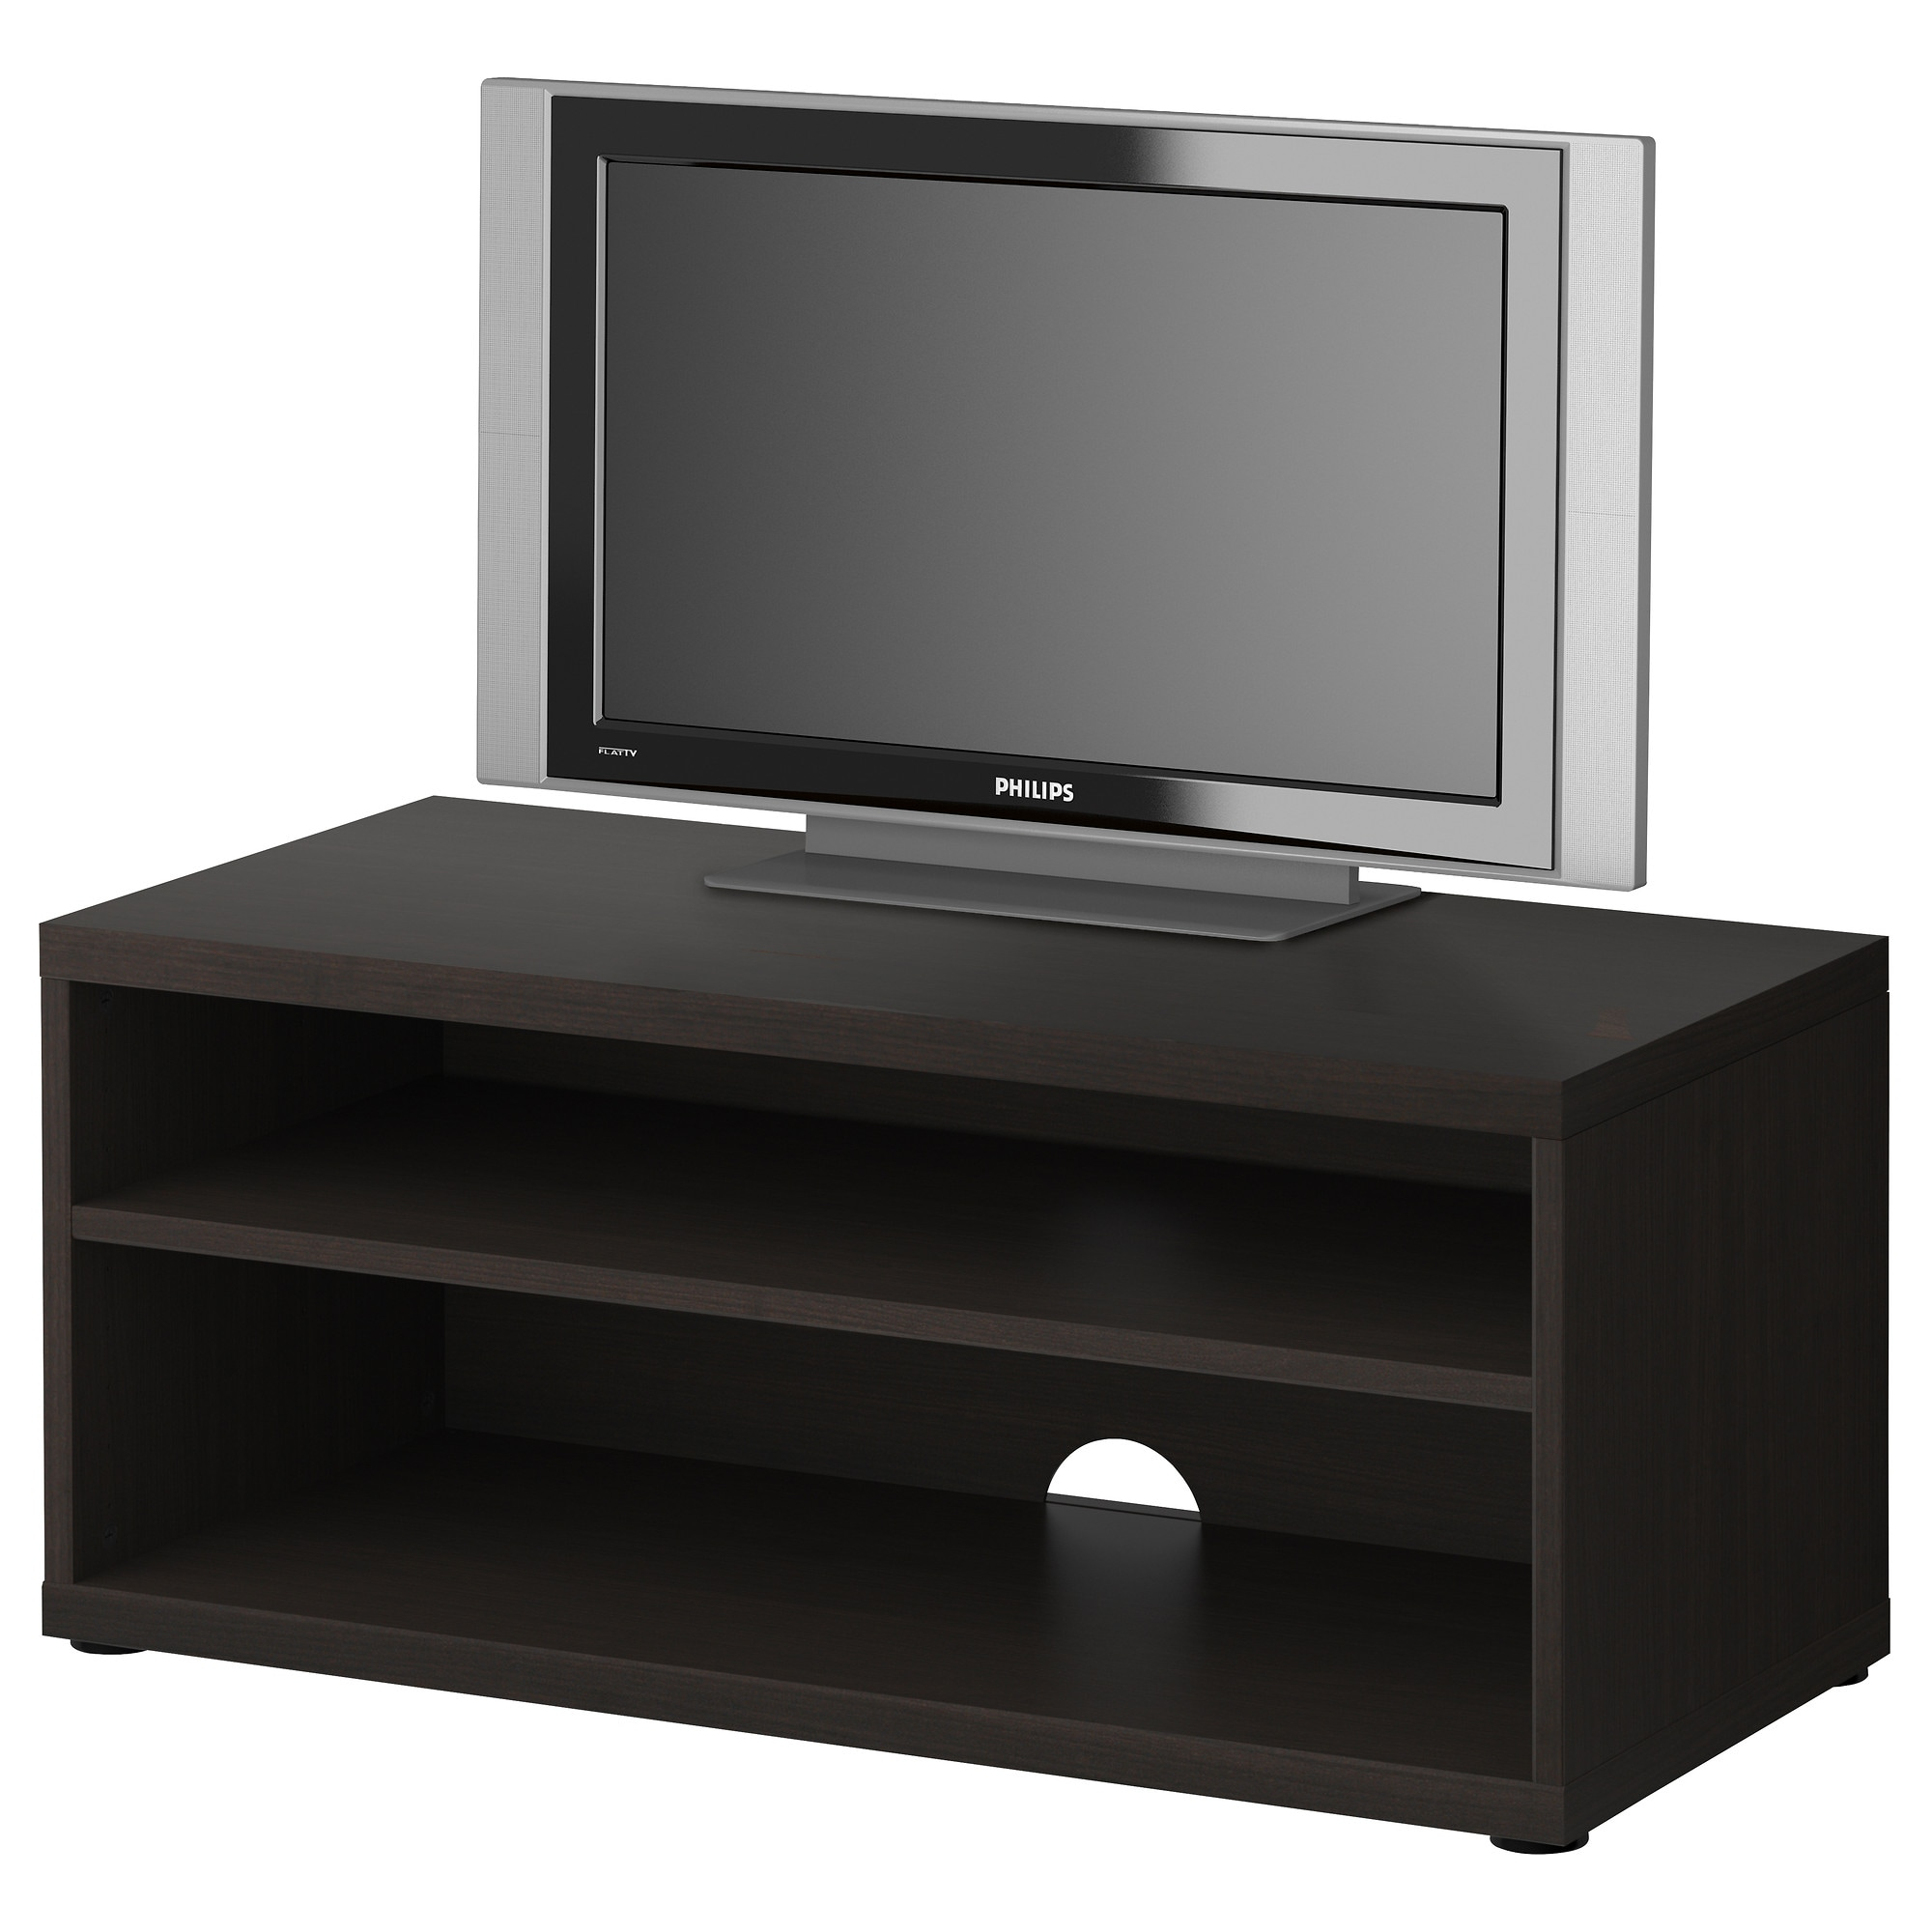 MOSJ– TV unit IKEA